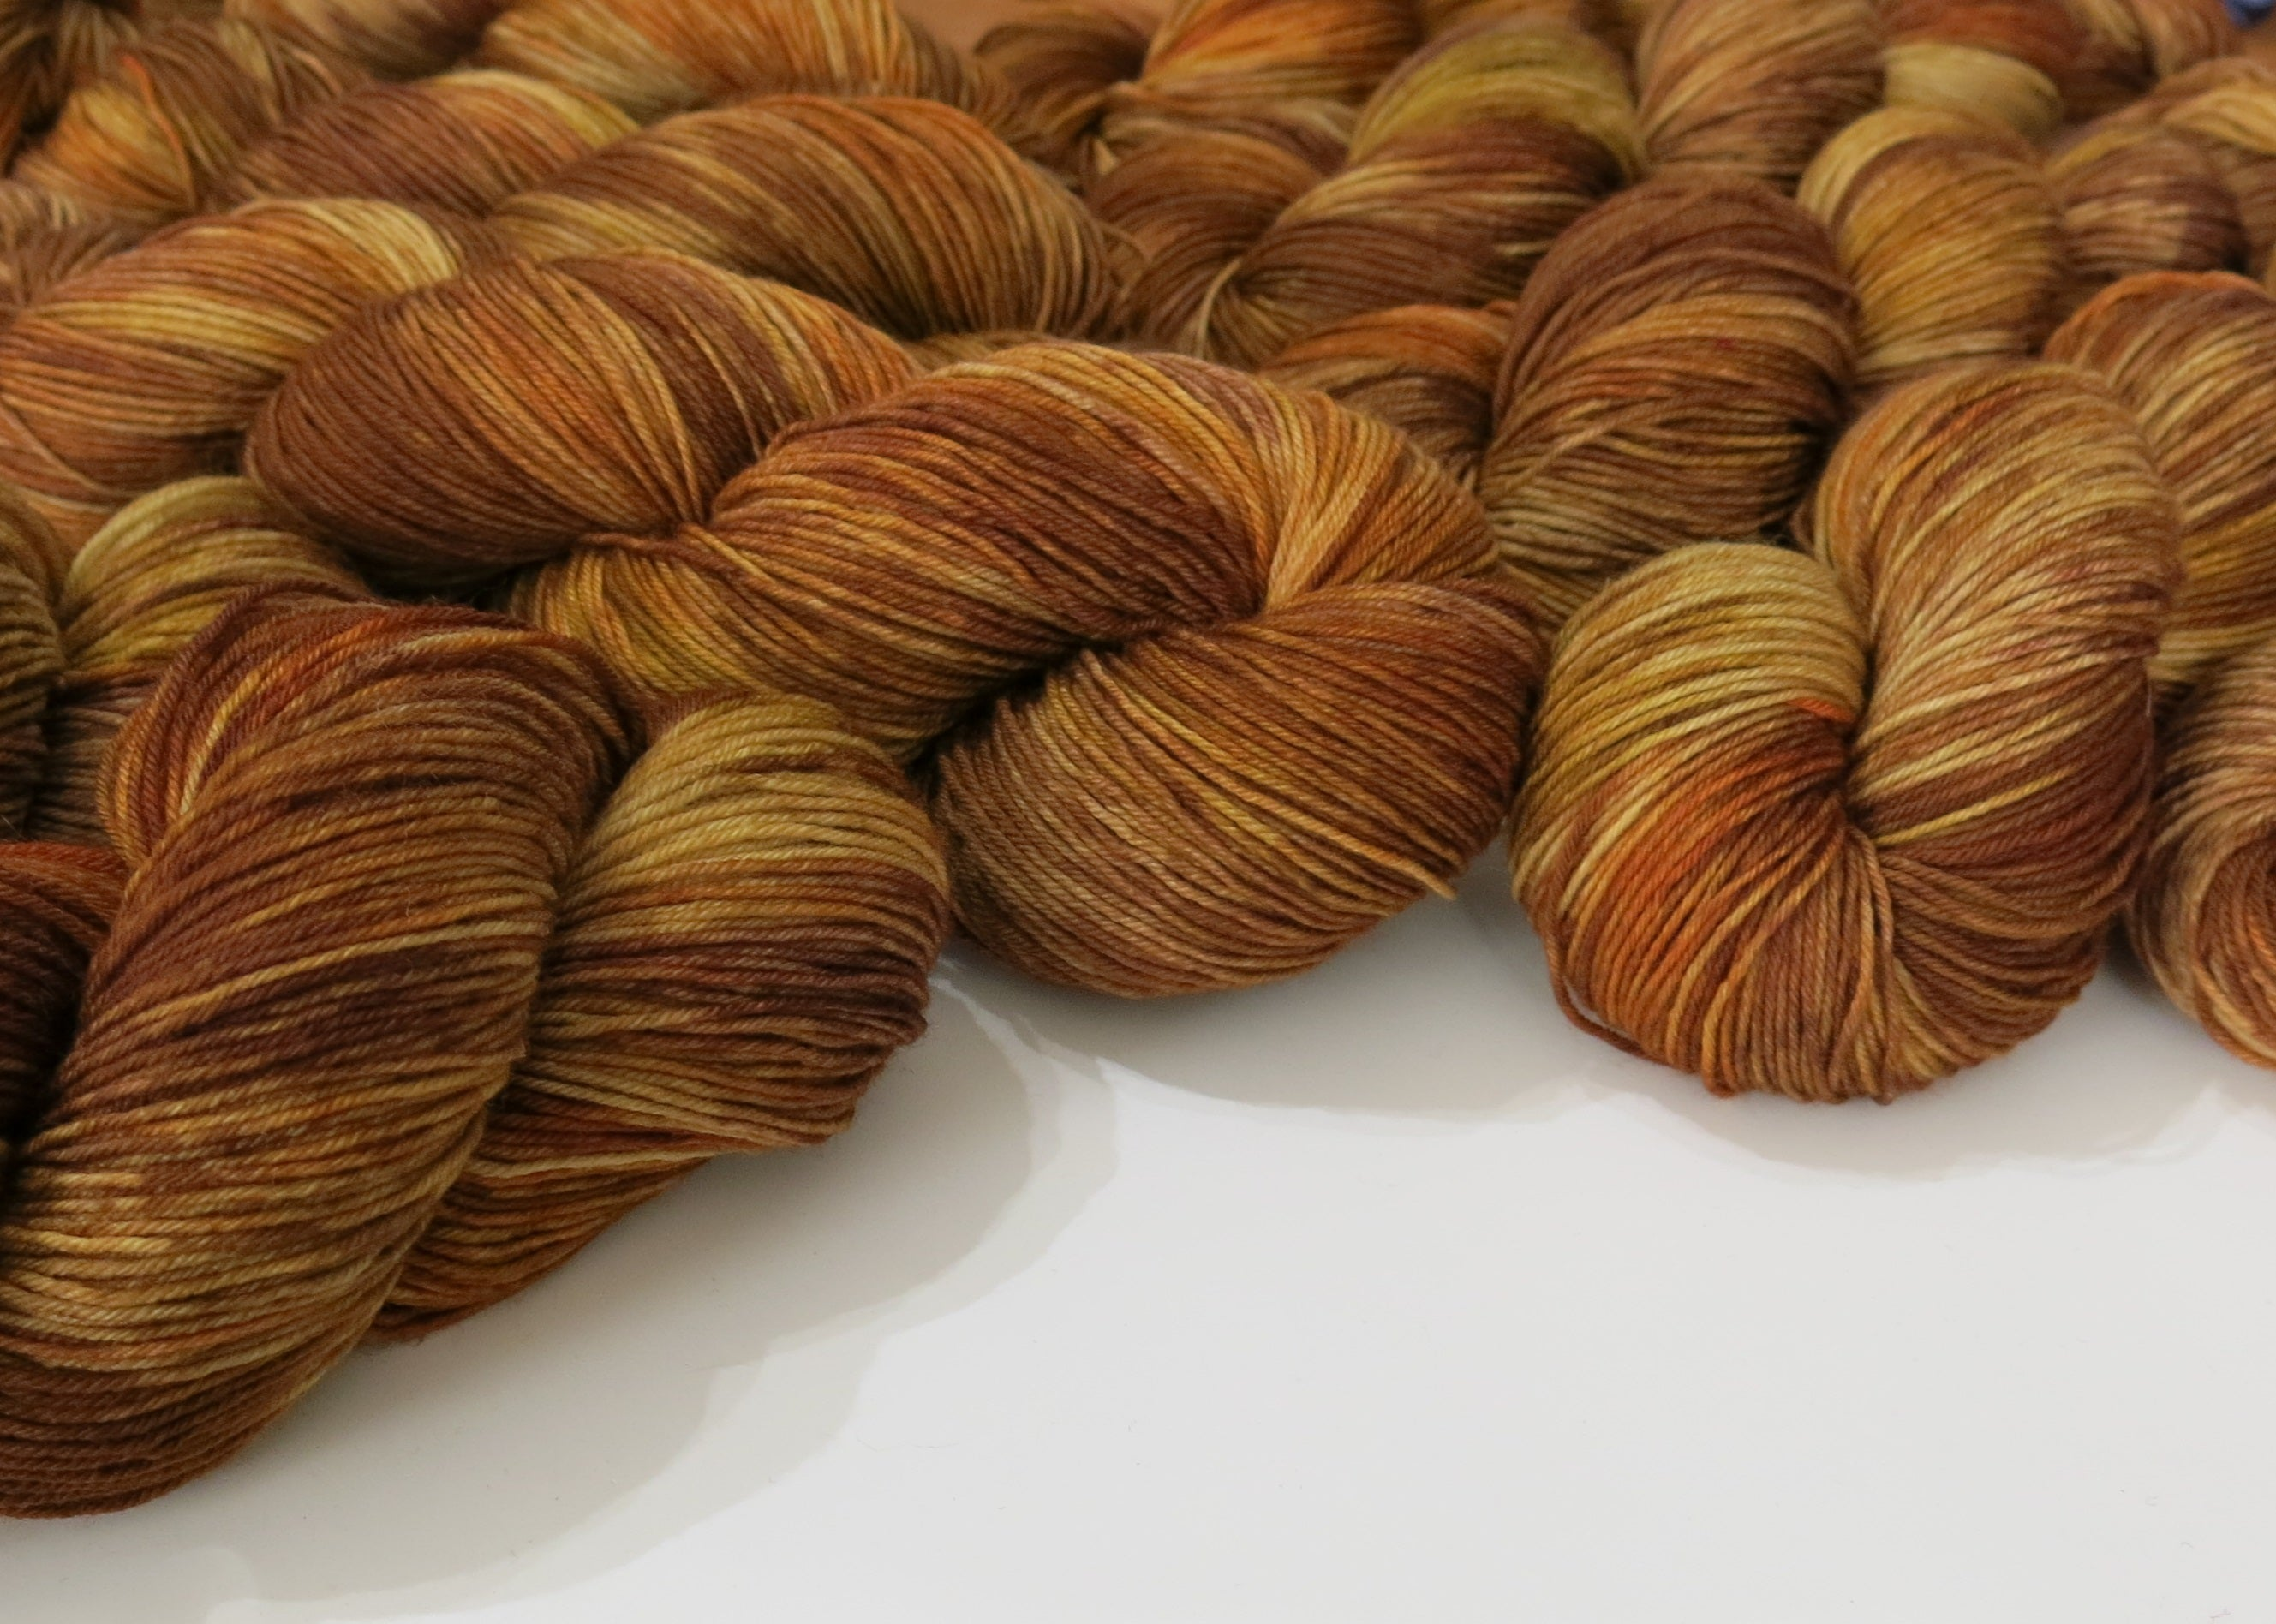 indie dyed yarn in reds, browns and yellows insoired by scottish willow back creels